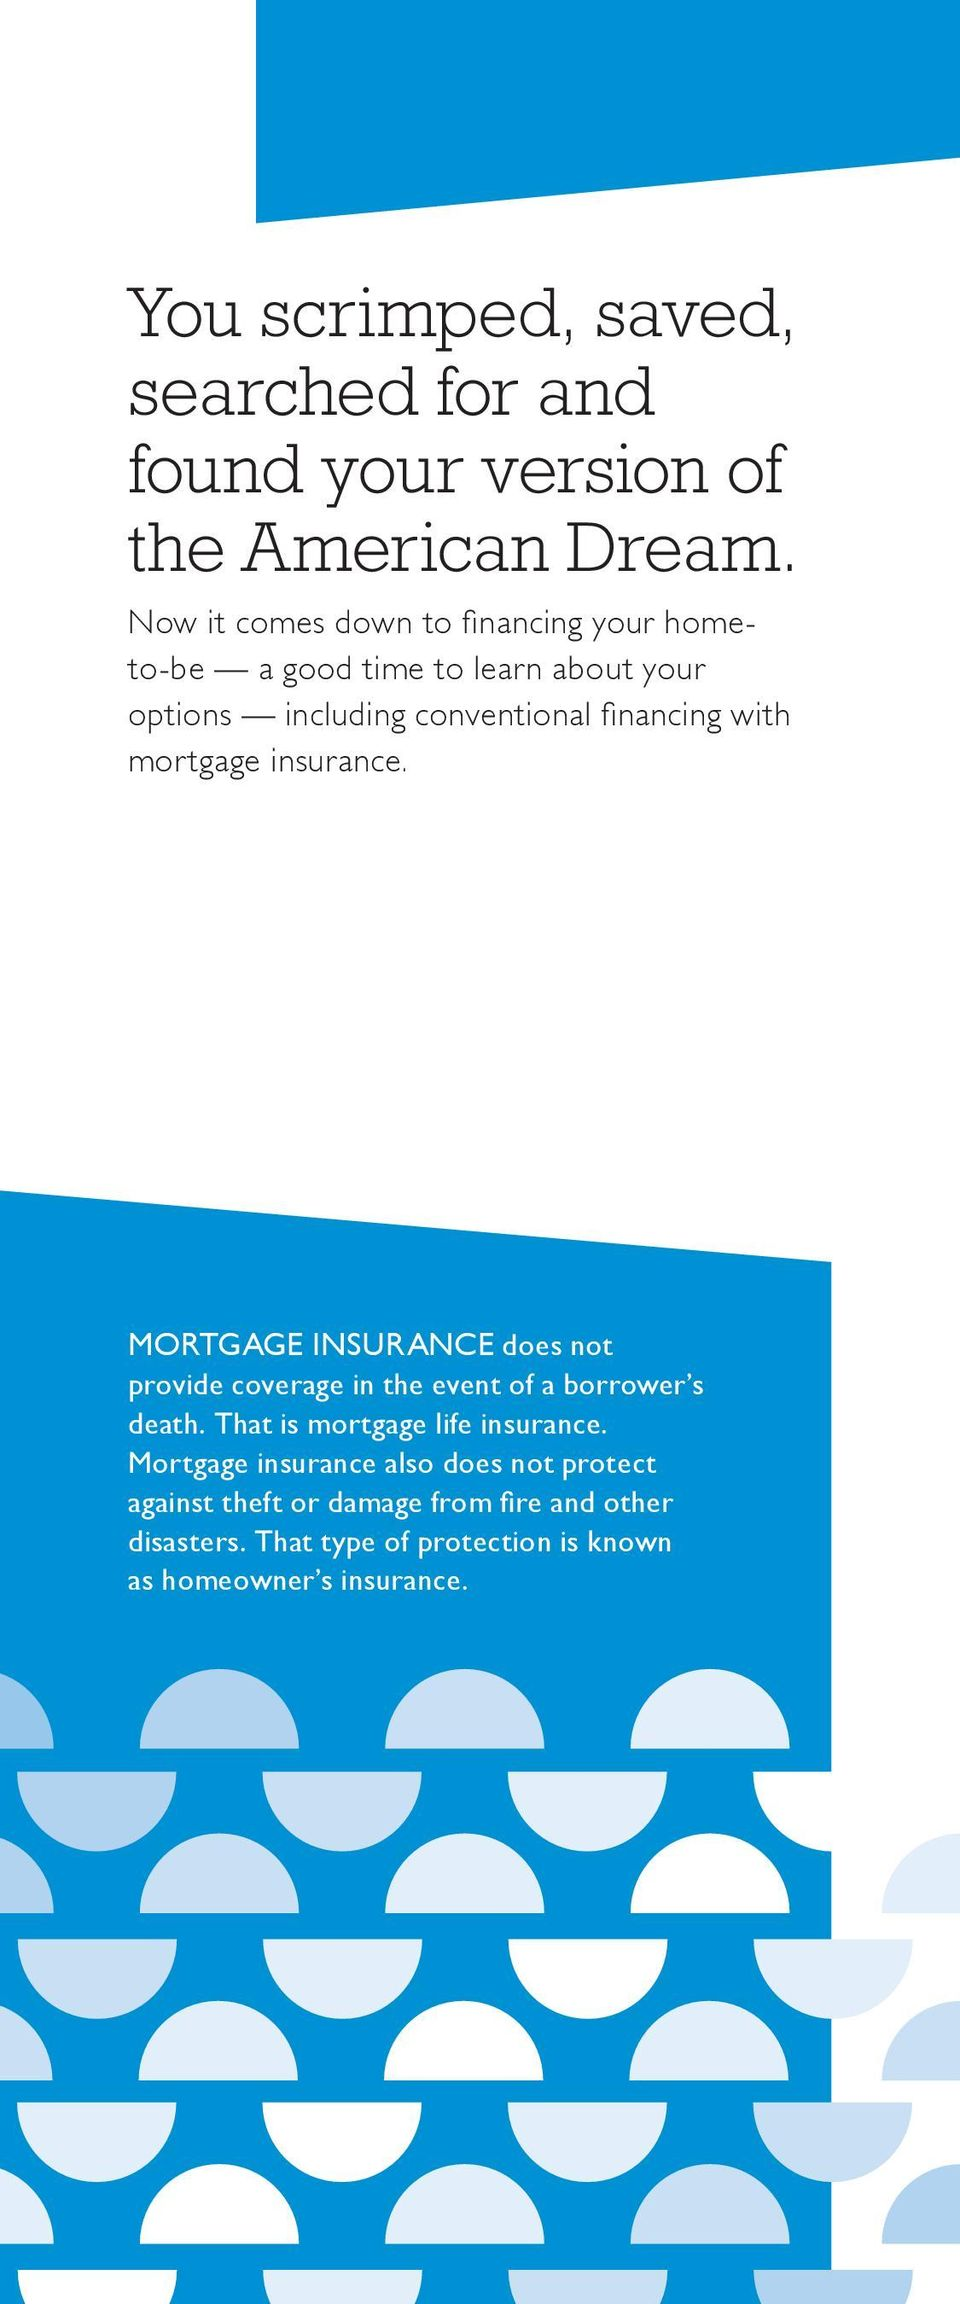 with mortgage insurance. MORTGAGE INSURANCE does not provide coverage in the event of a borrower s death.